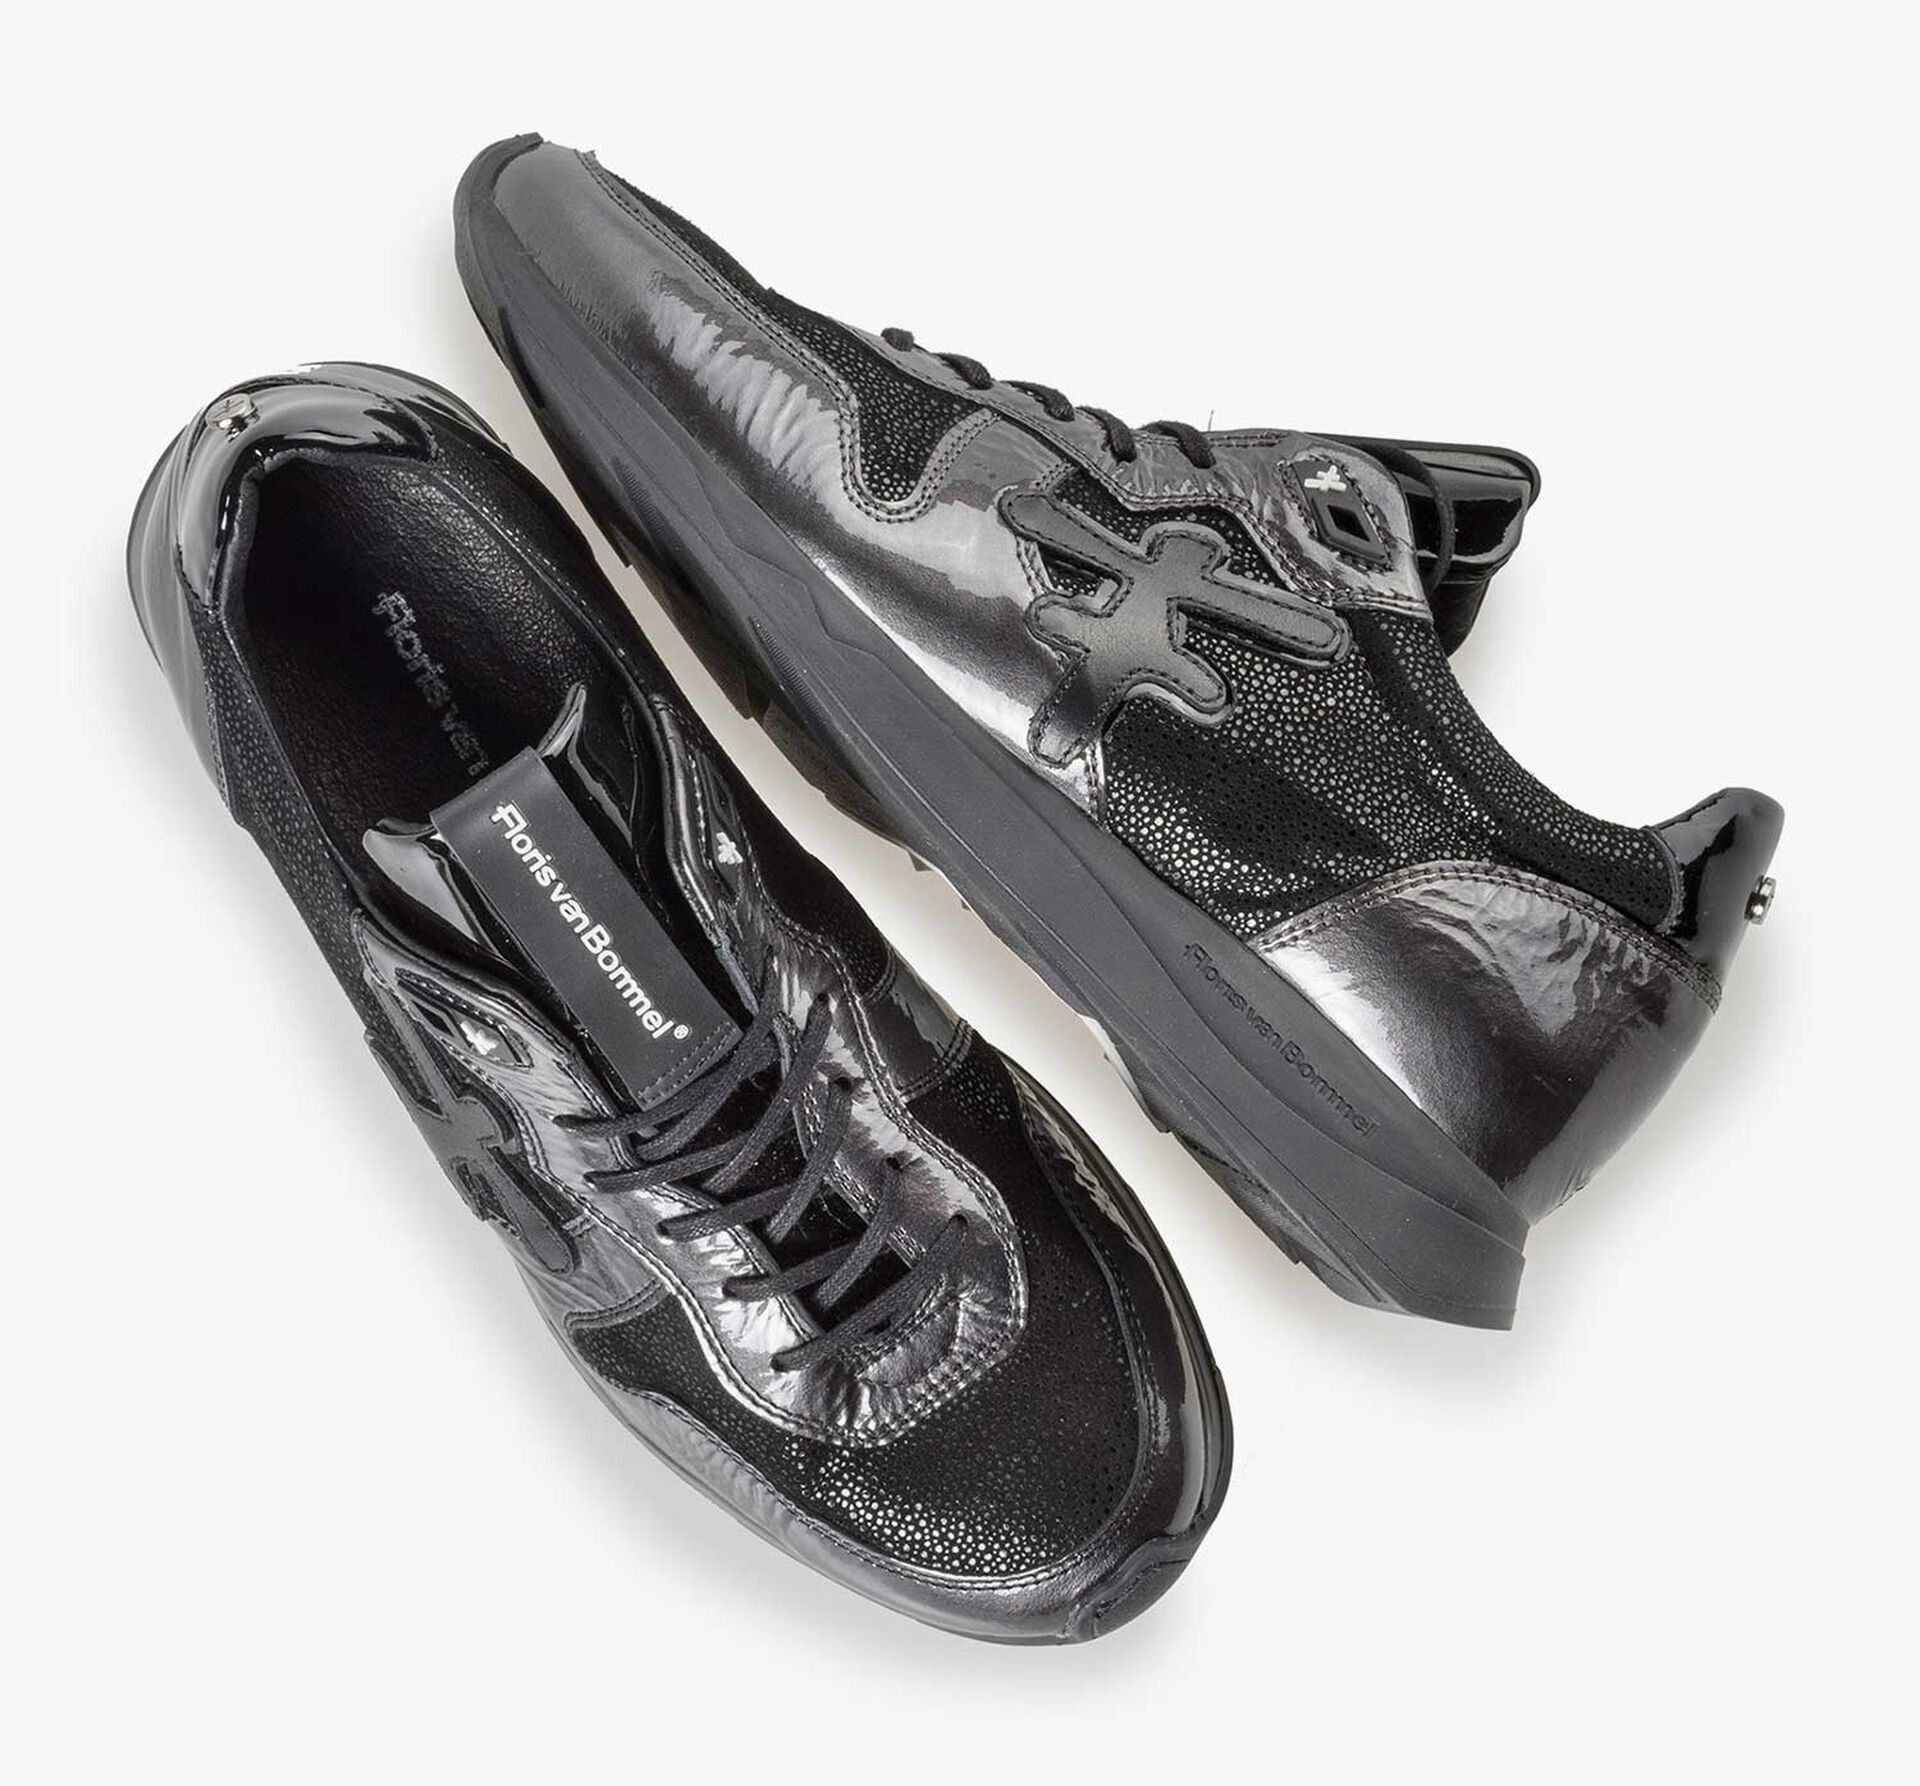 Grey patent leather sneaker with runner's sole